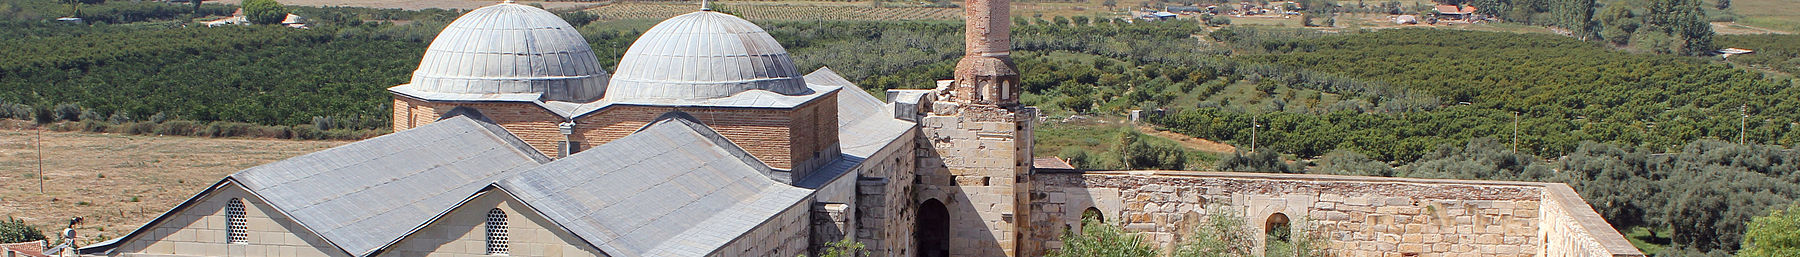 The 14th century İsa Bey Mosque, overlooking the orchards on what once was the Gulf of Ephesus, before being silted up by the Cayster/Küçükmenderes River